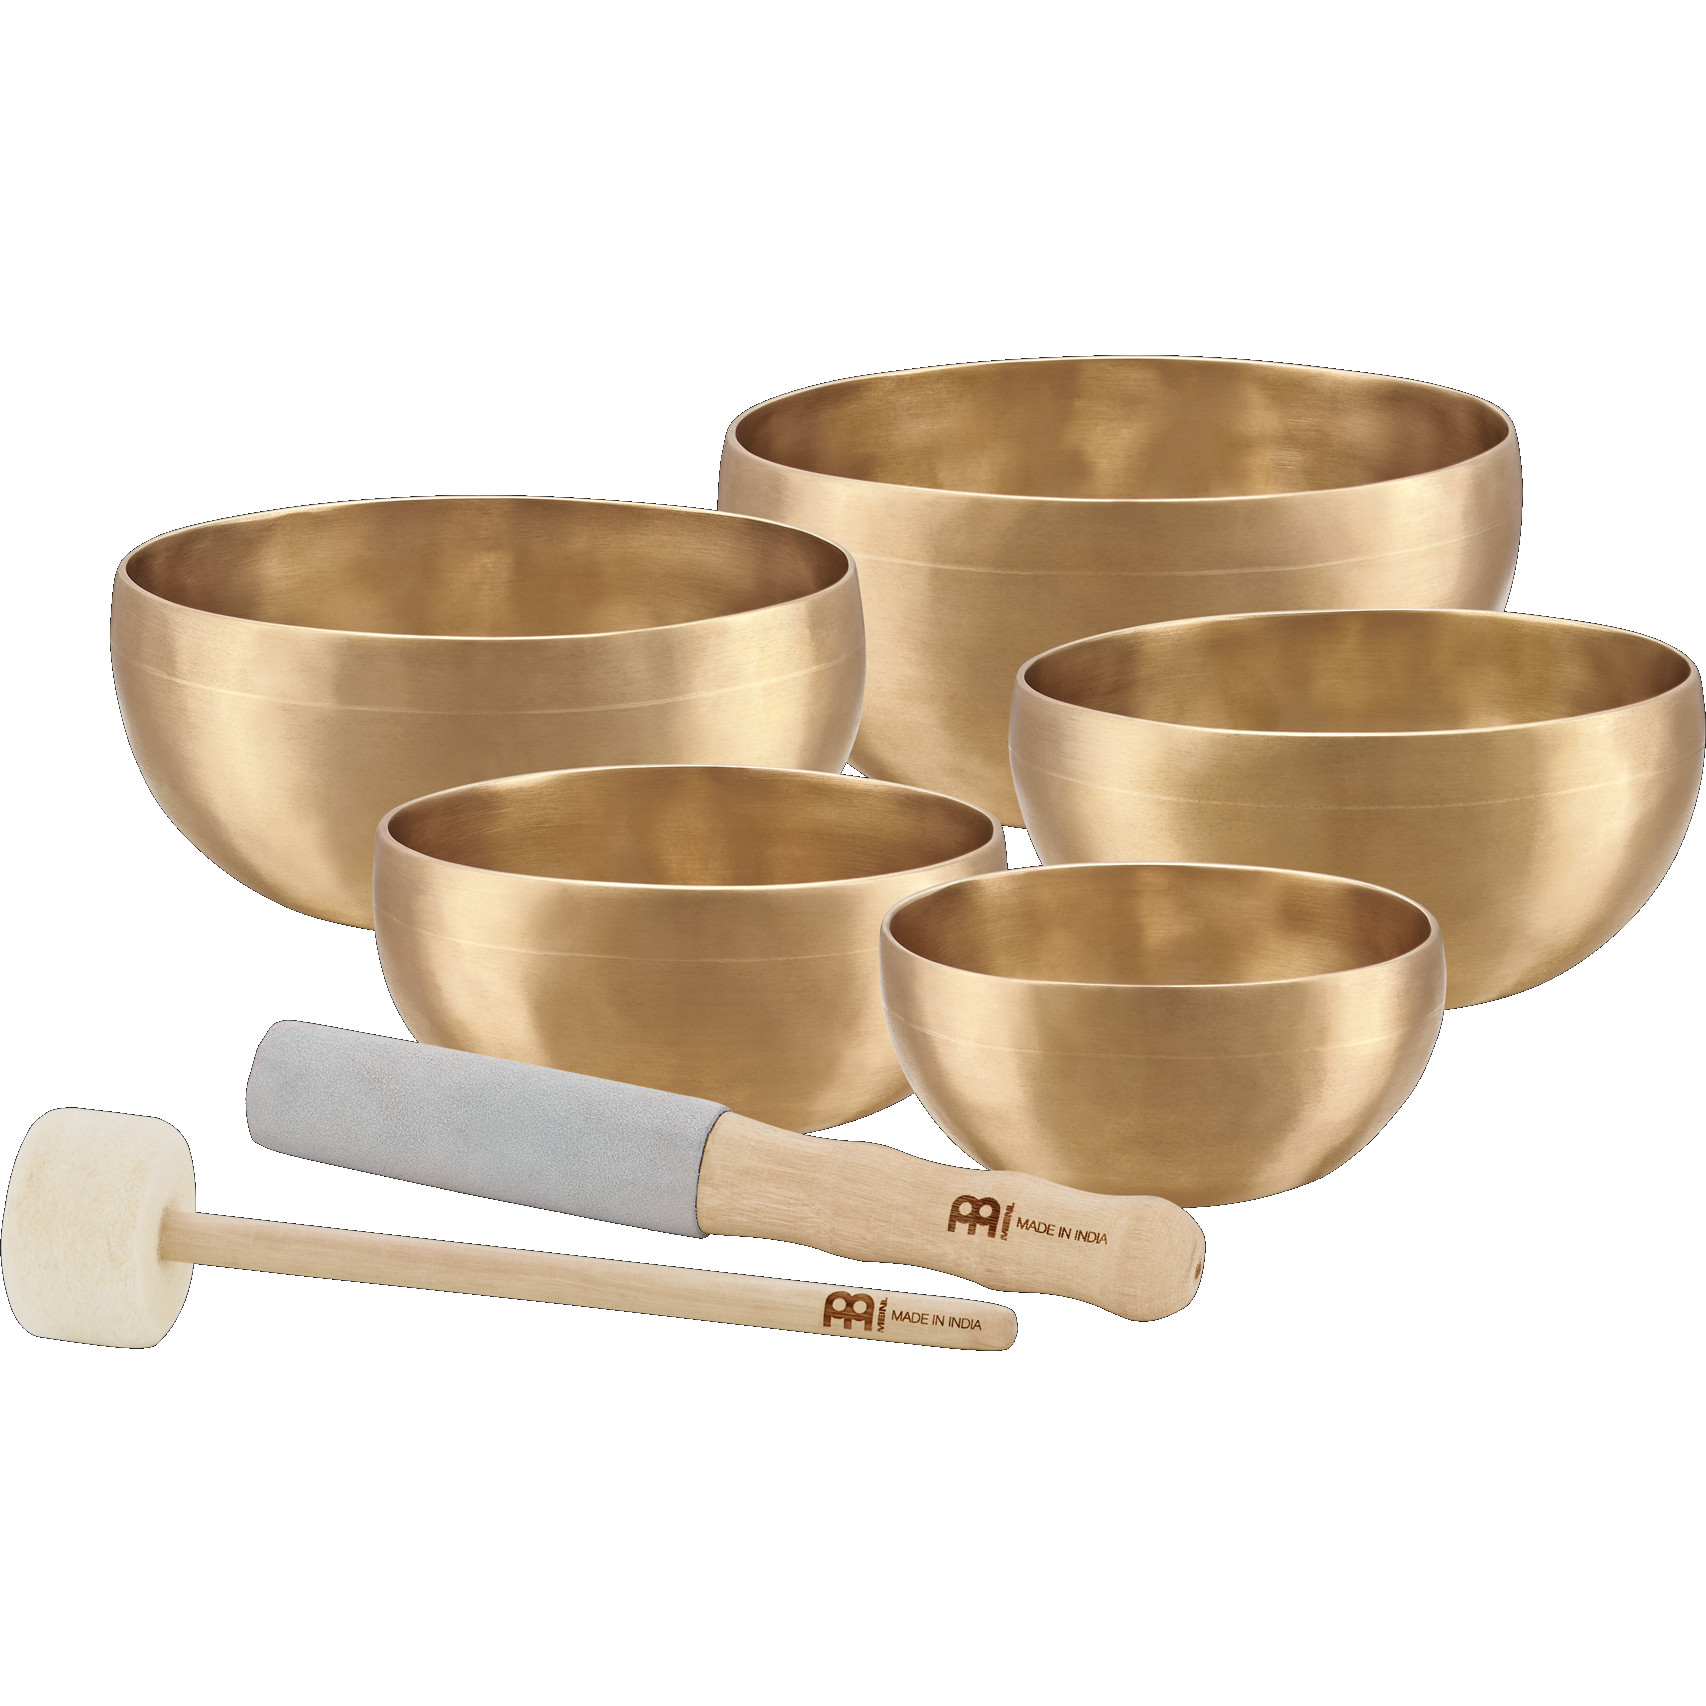 Meinl U 2950 Sonic Energy Universal singing bowl set